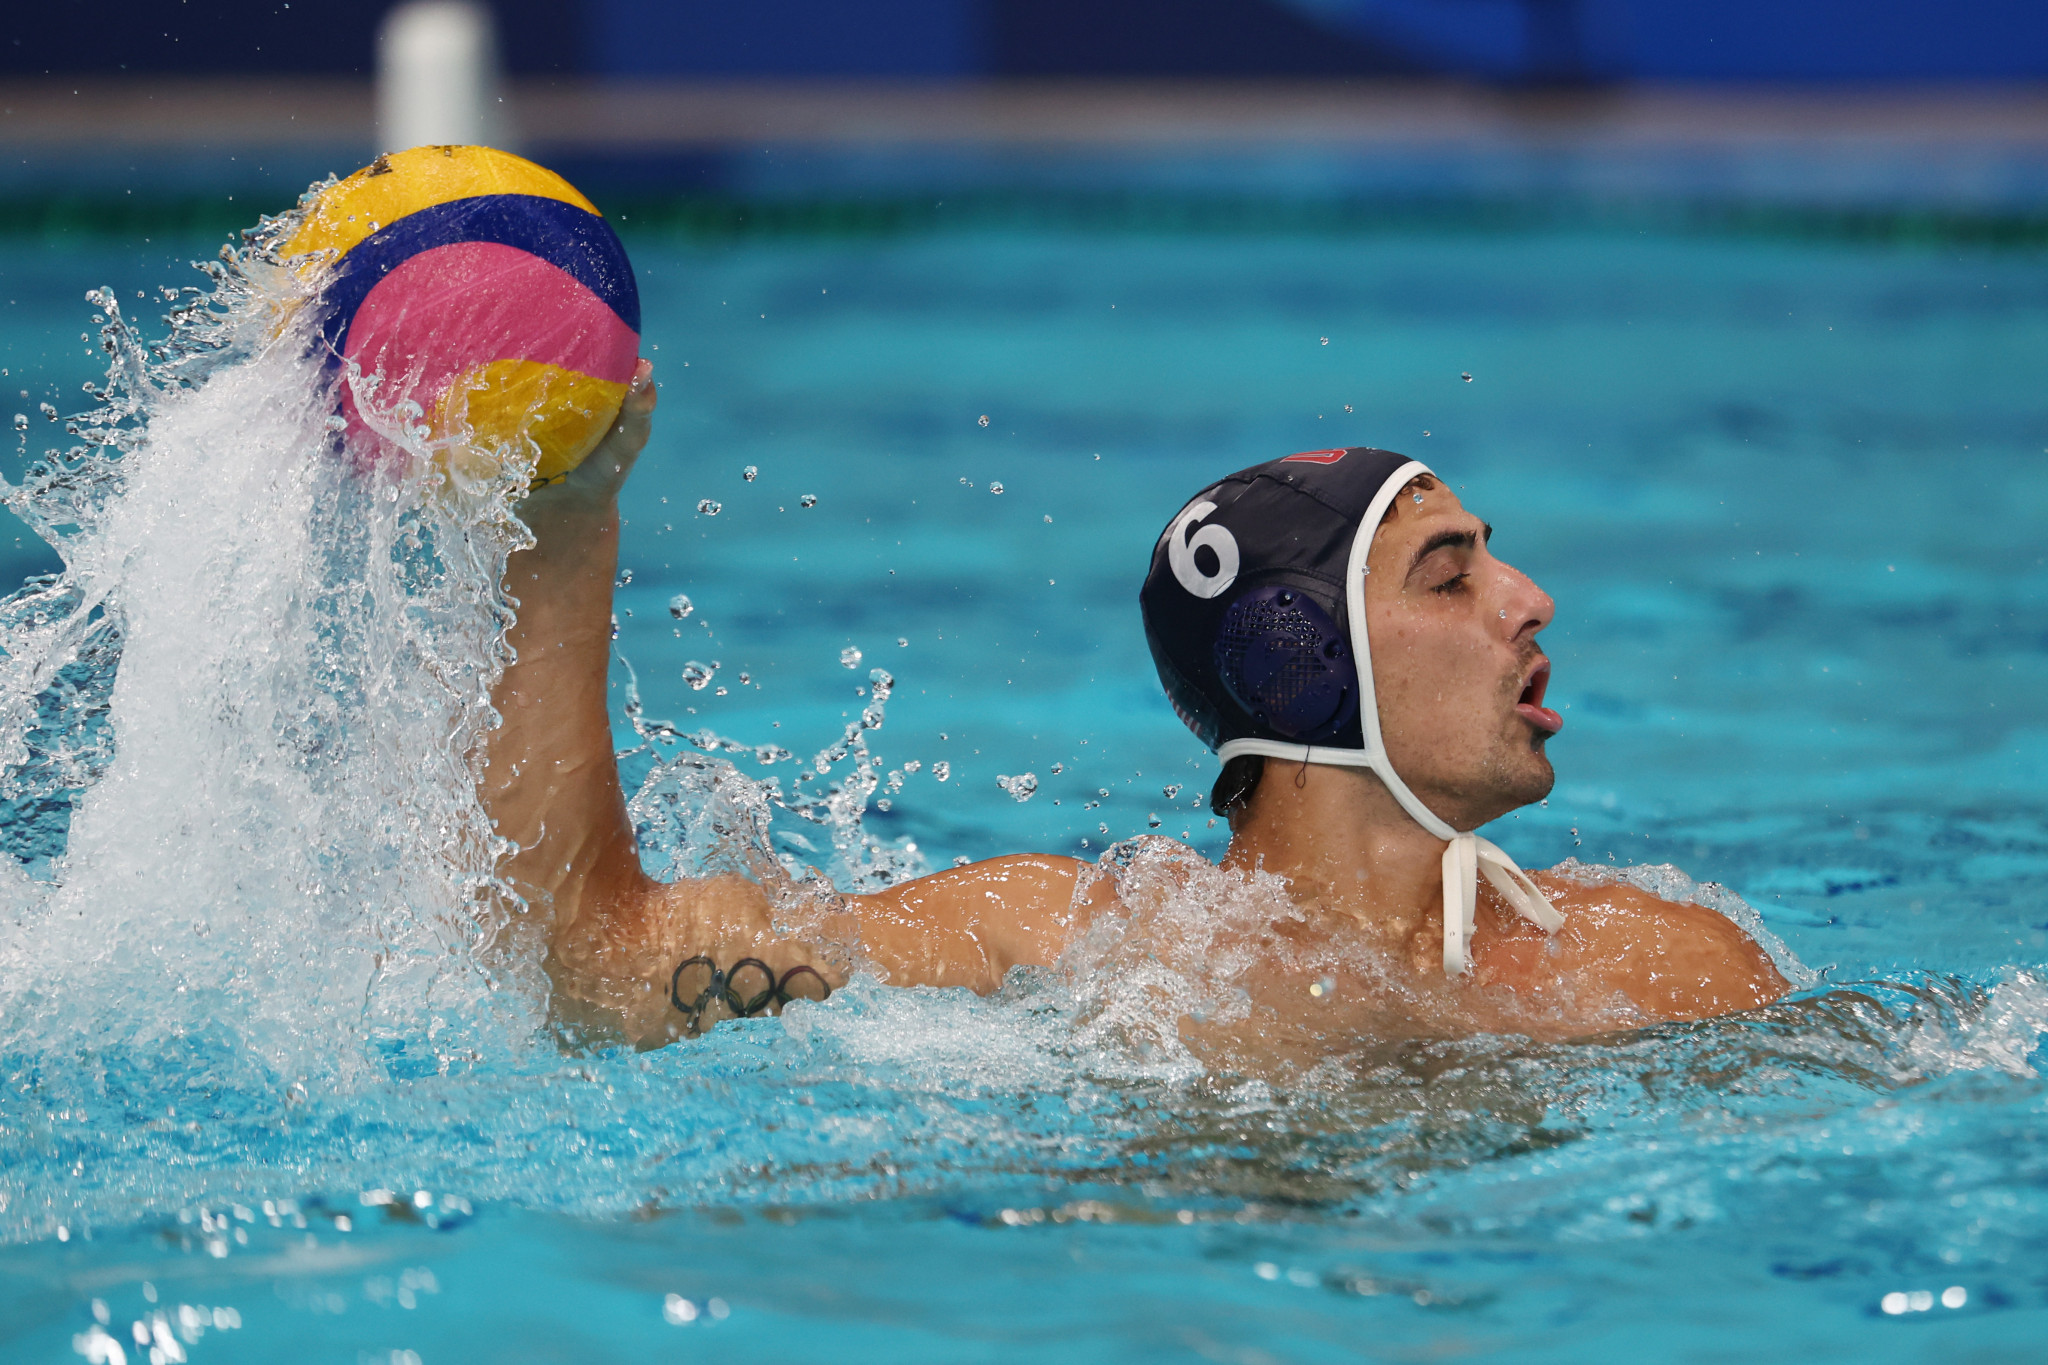 Croatia top Group A in FINA World Men's Junior Water Polo Championships 2021 after humiliating Uzbekistan